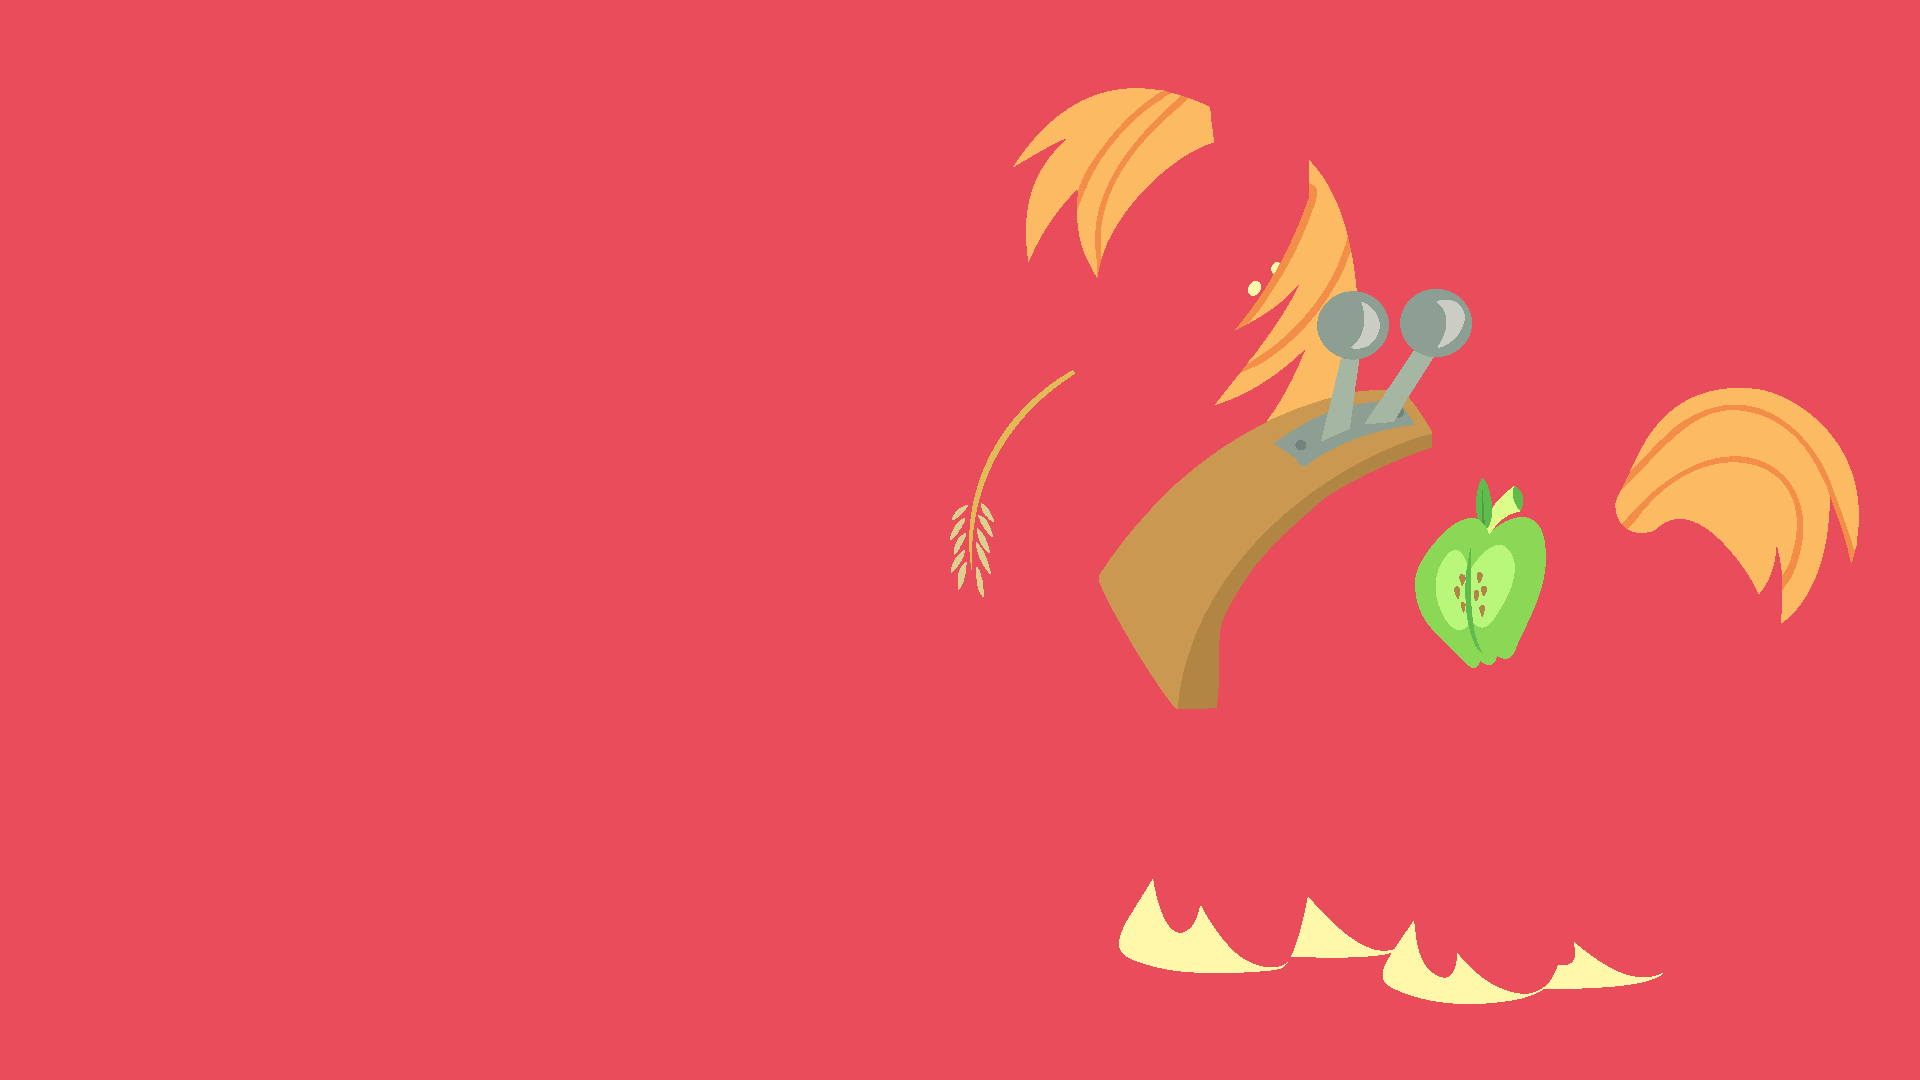 Big Mac Minimalistic Wallpaper by Kitana-Coldfire